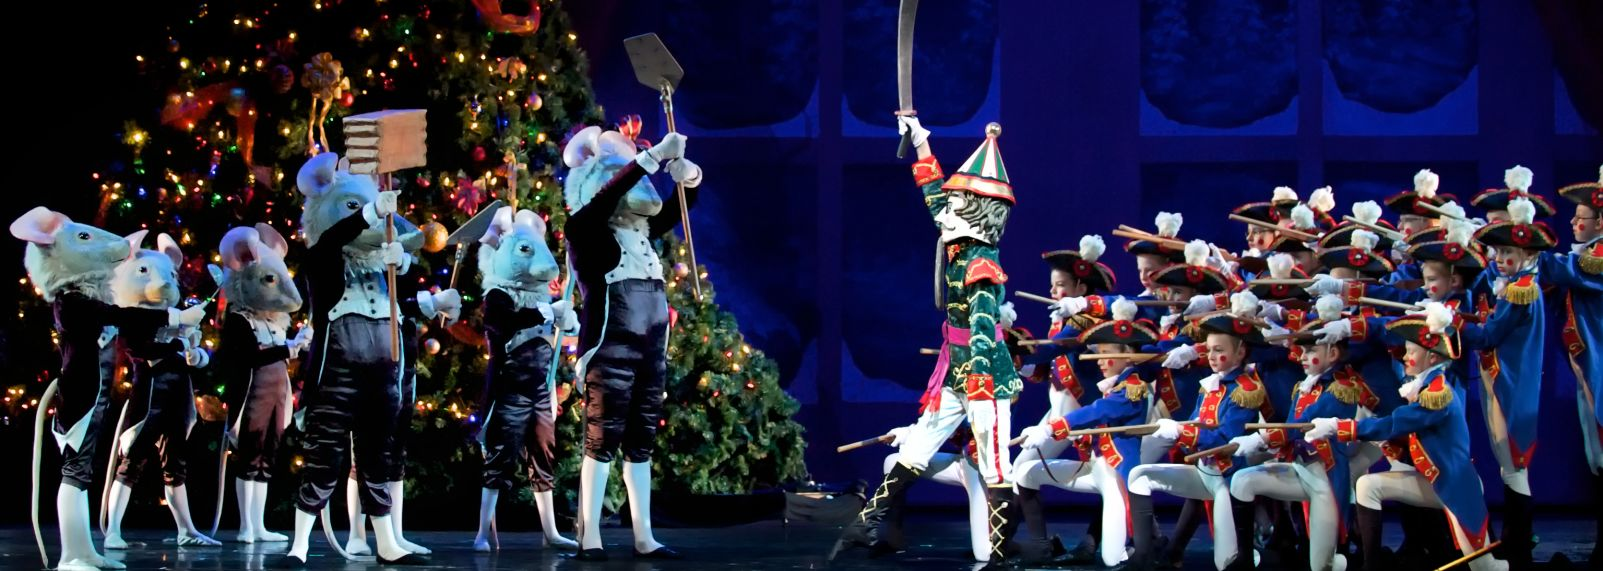 Carolina_Ballet_Nutcracker_Chris_Walt_06.JPG